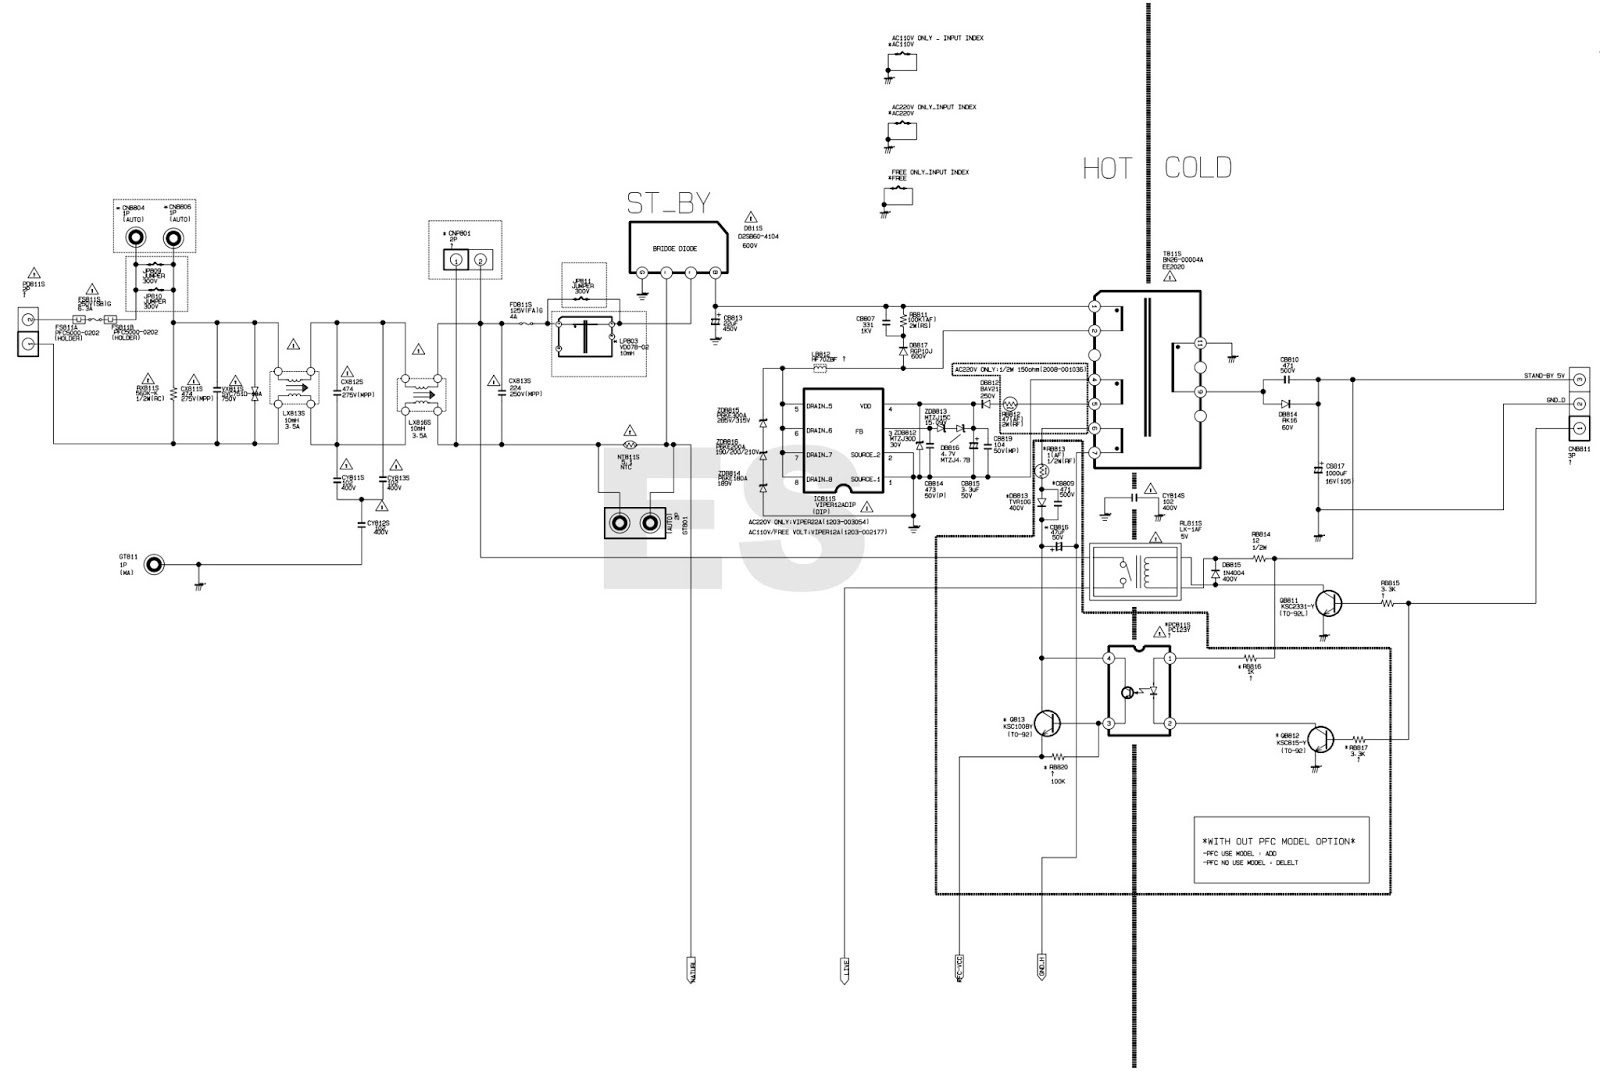 medium resolution of samsung power supply schematic diagrams data wiring diagram schemafirmware download samsung bn44 00622b power supply board